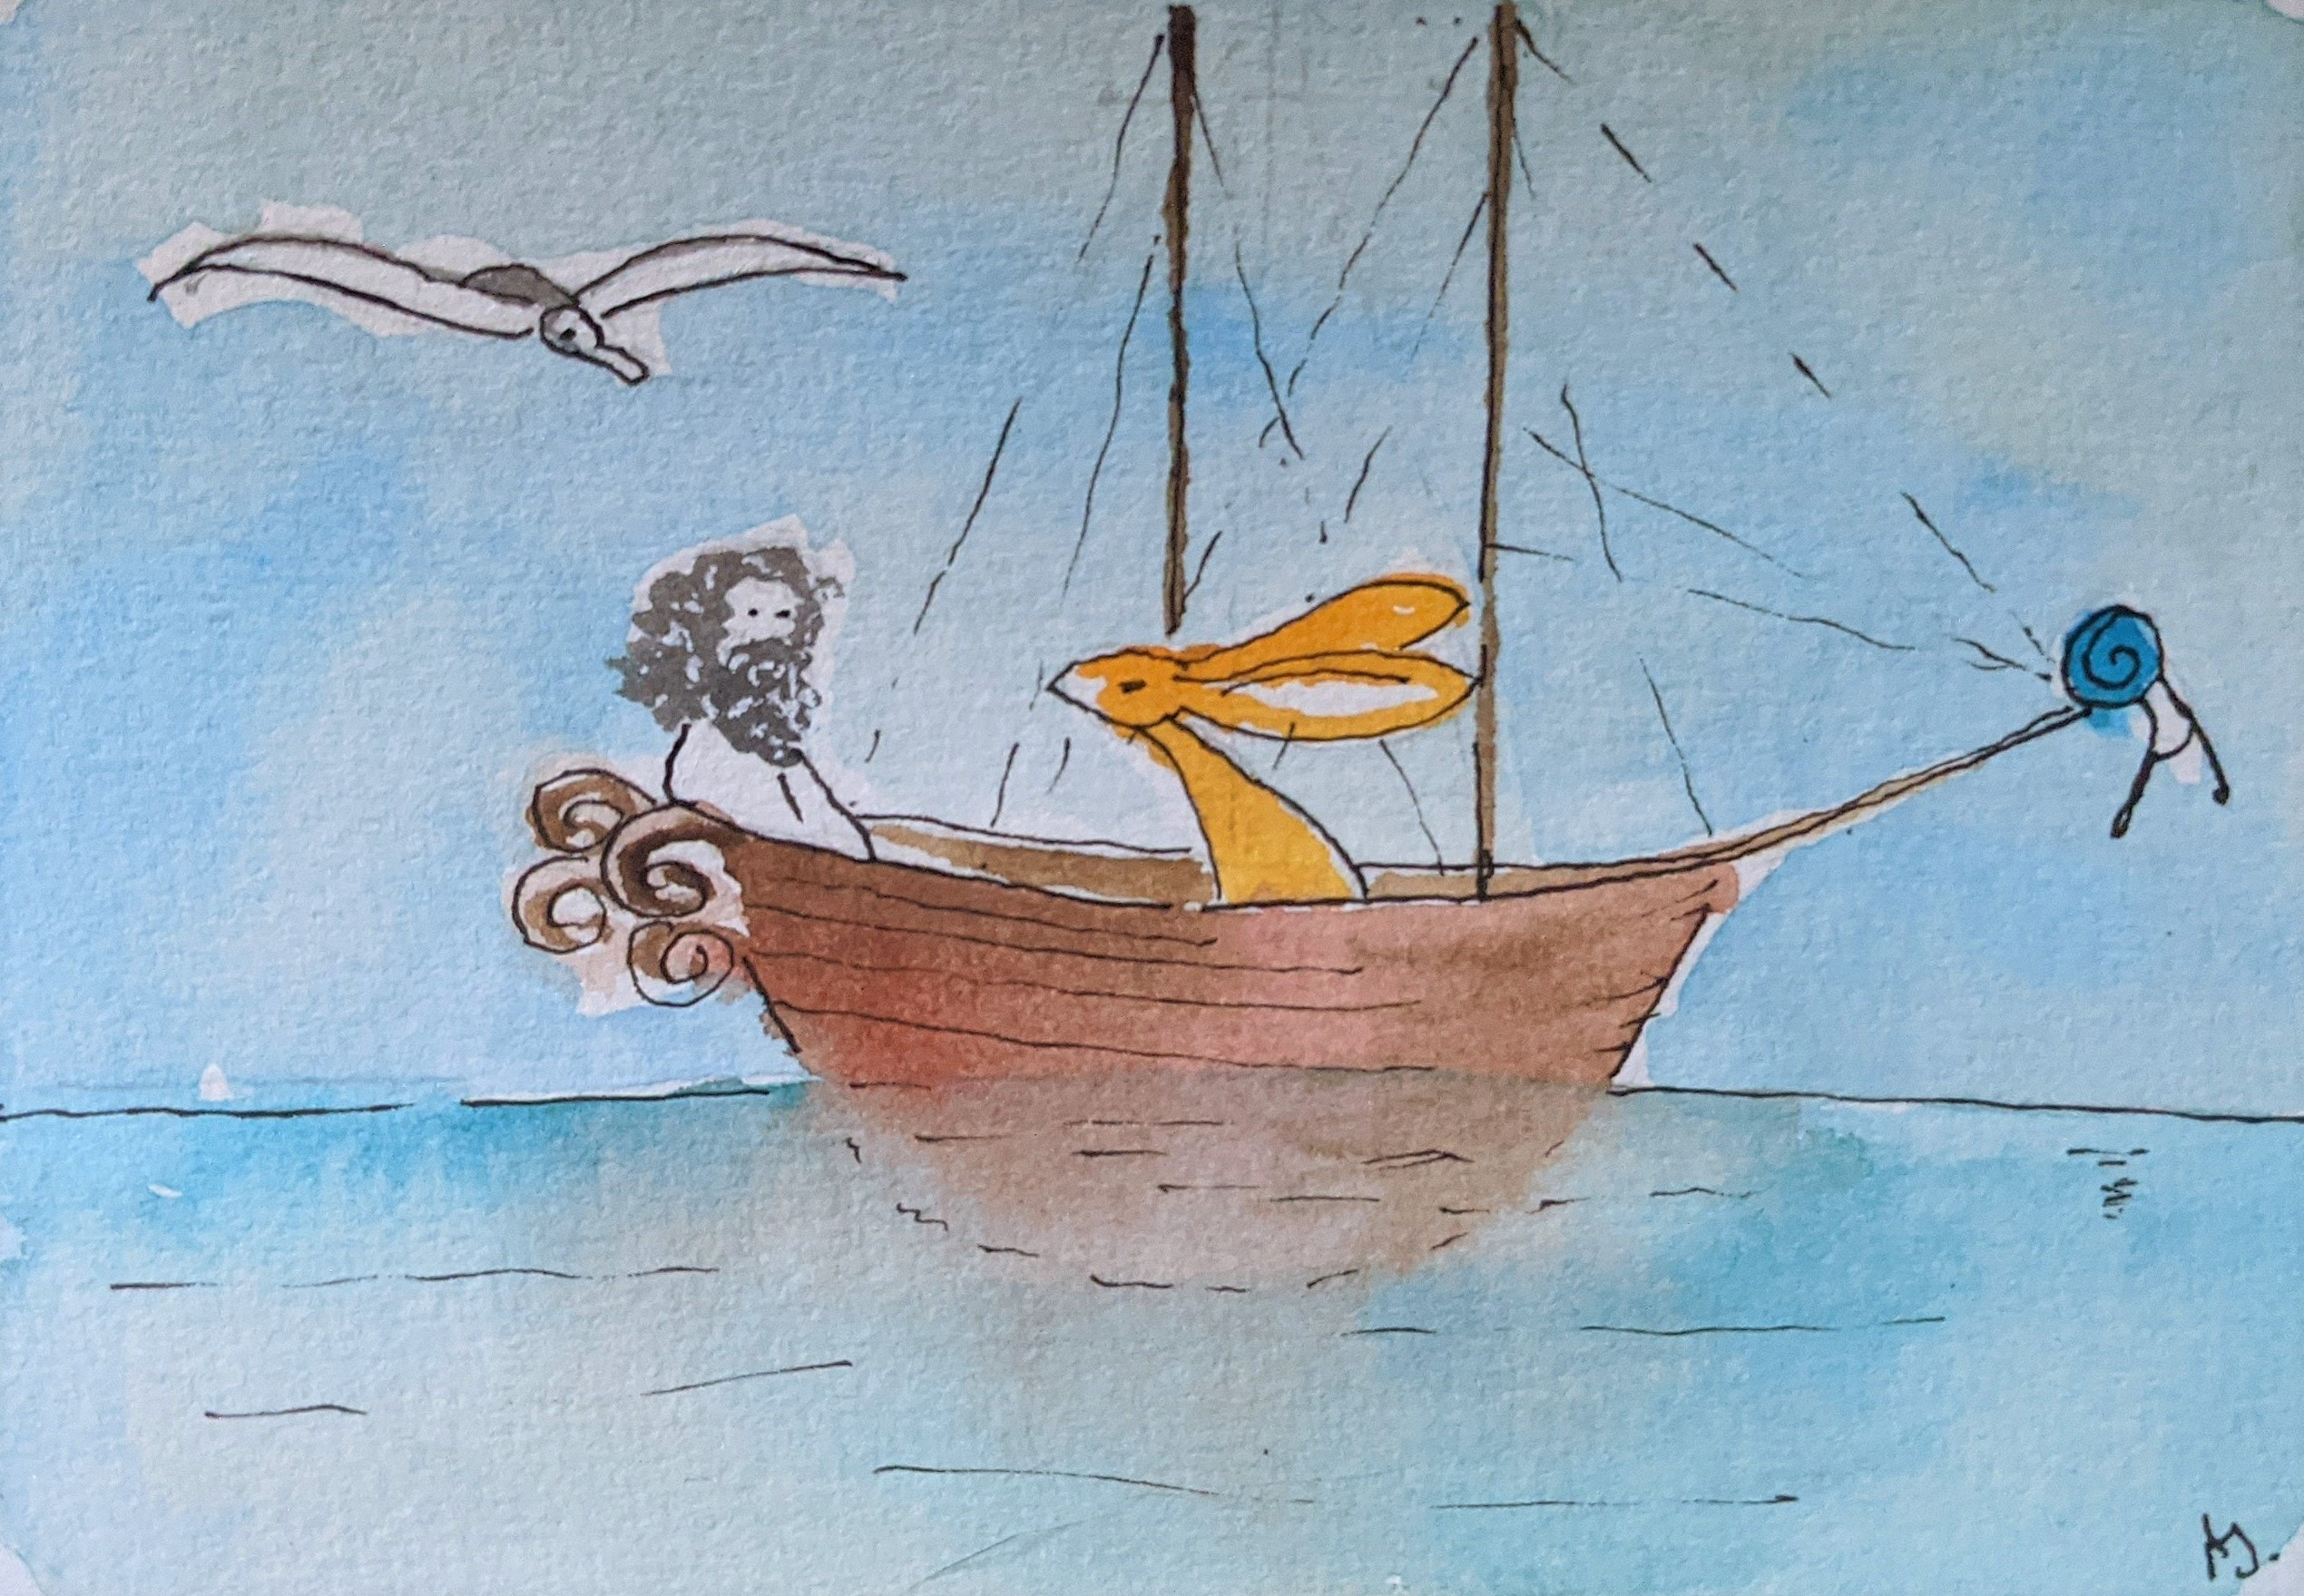 Day 49 The Rime of the Ancient Mariner